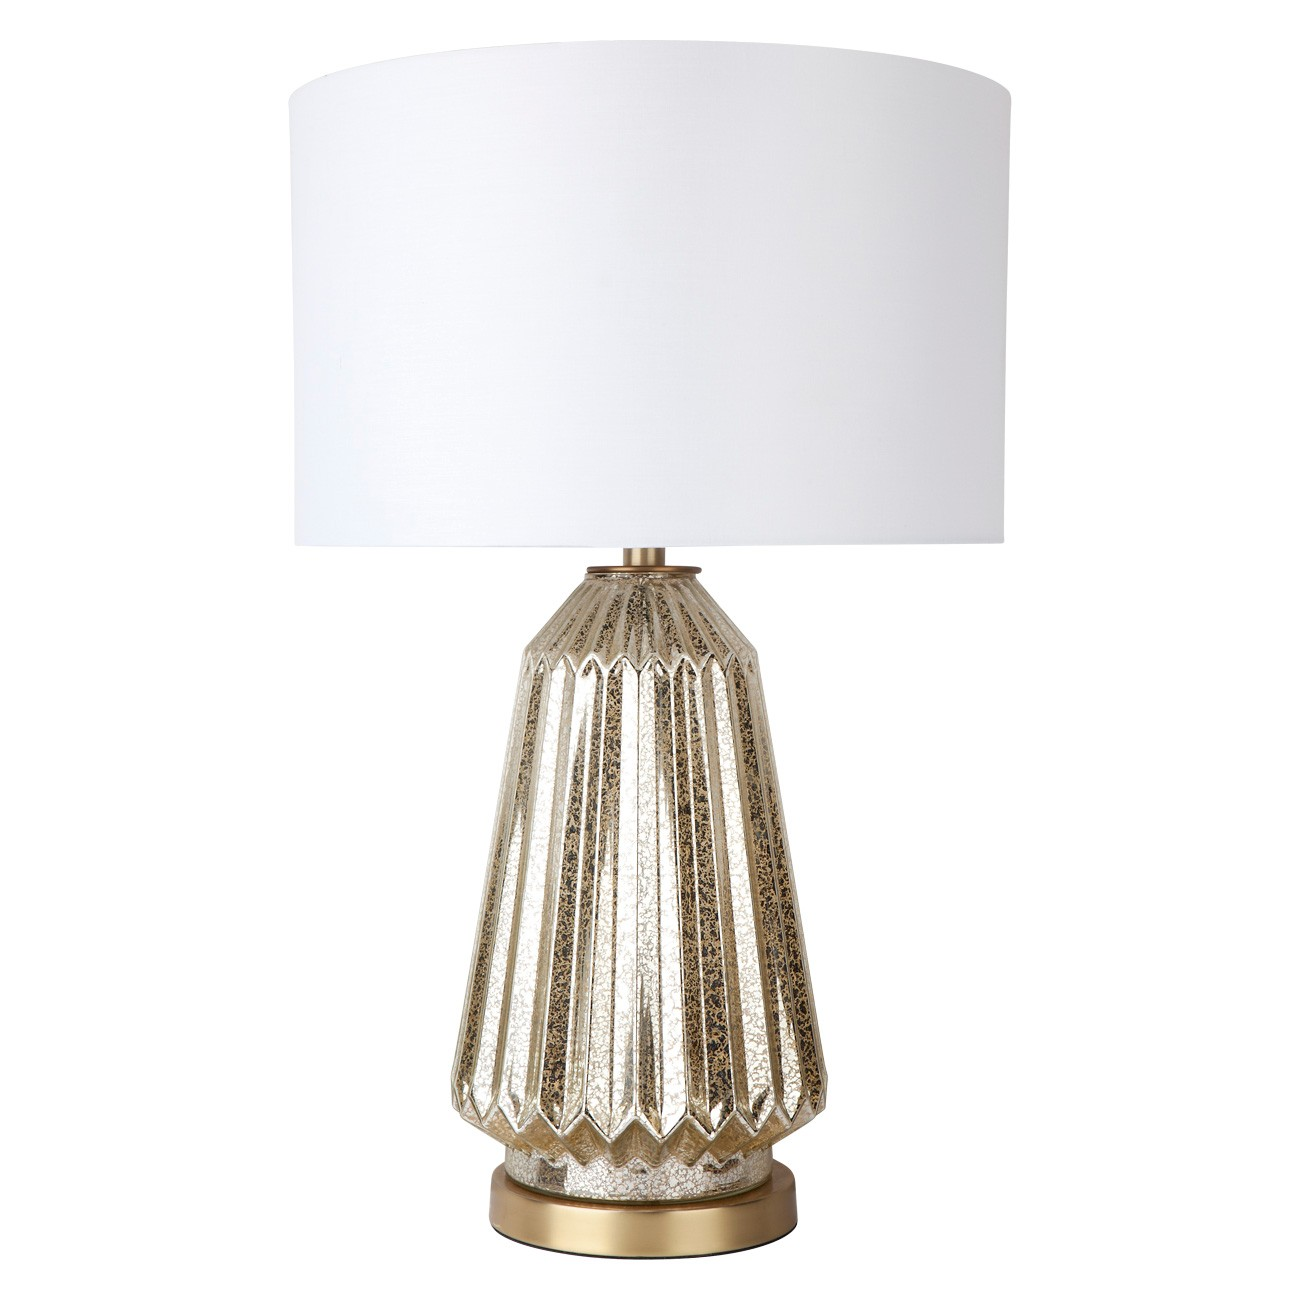 Lana Mercury Glass Table Lamp